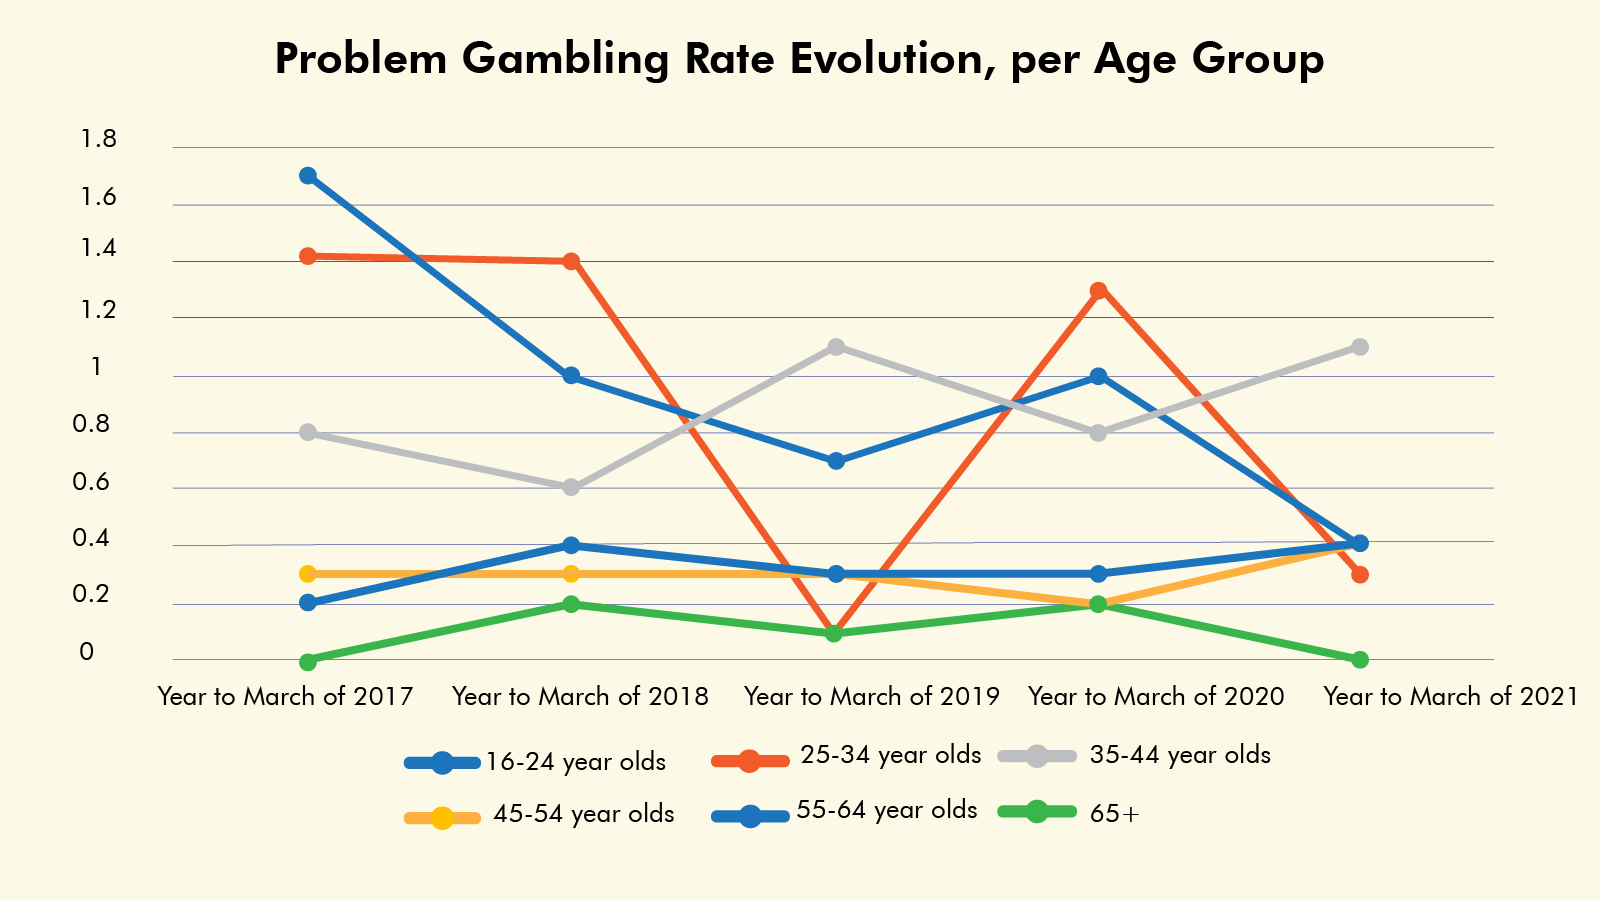 Problem Gambling Rate Evolution, per Age Group